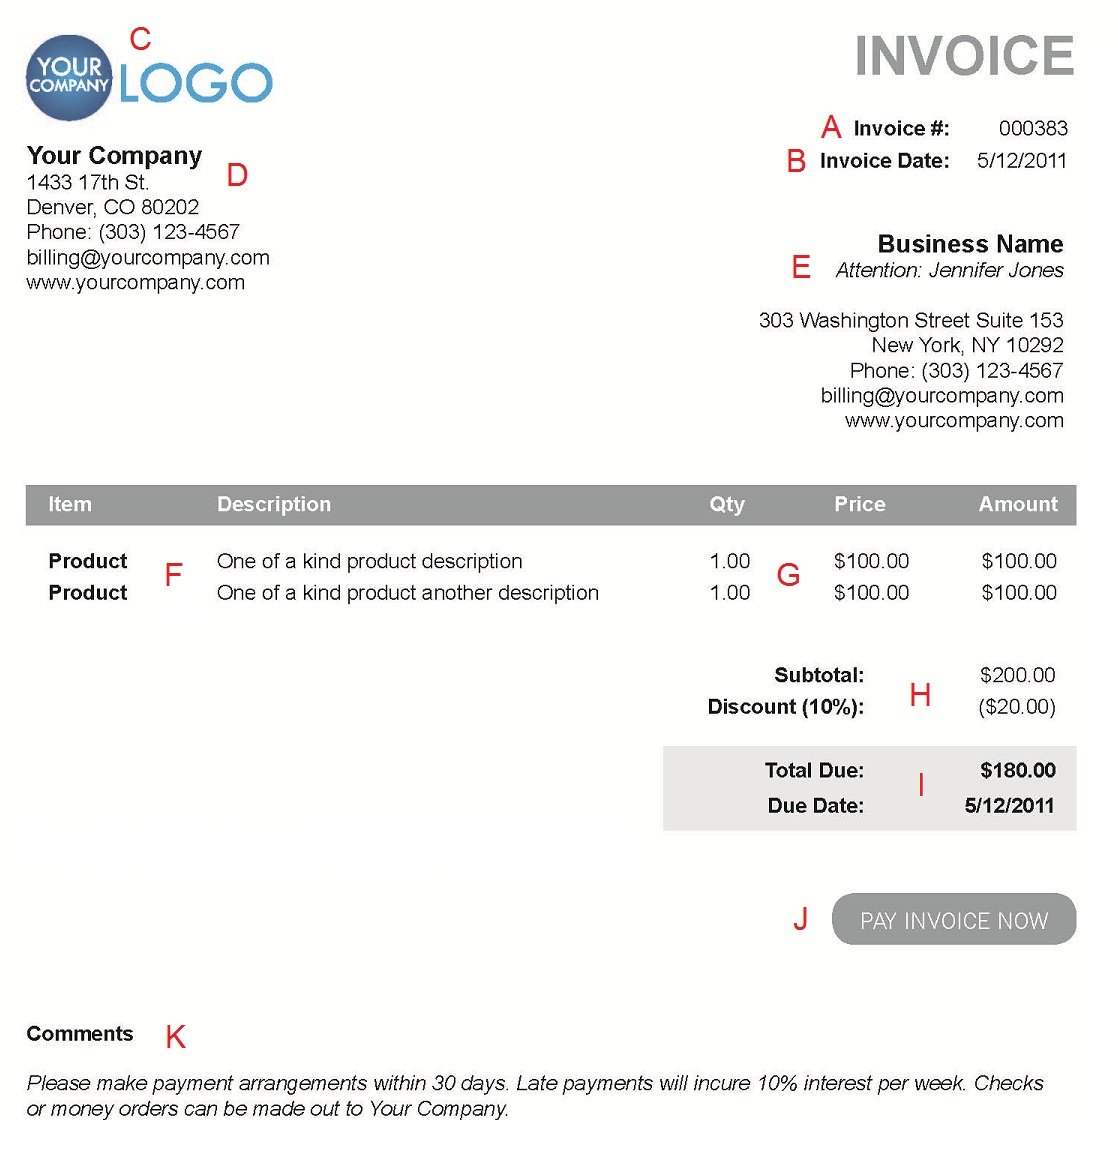 Opposenewapstandardsus  Sweet The  Different Sections Of An Electronic Payment Invoice With Lovely A  With Awesome Car Receipt Template Also Receipt Form Template In Addition Email Read Receipts And Car Receipt As Well As Enterprise Tolls Receipt Additionally Upon The Receipt From Paysimplecom With Opposenewapstandardsus  Lovely The  Different Sections Of An Electronic Payment Invoice With Awesome A  And Sweet Car Receipt Template Also Receipt Form Template In Addition Email Read Receipts From Paysimplecom